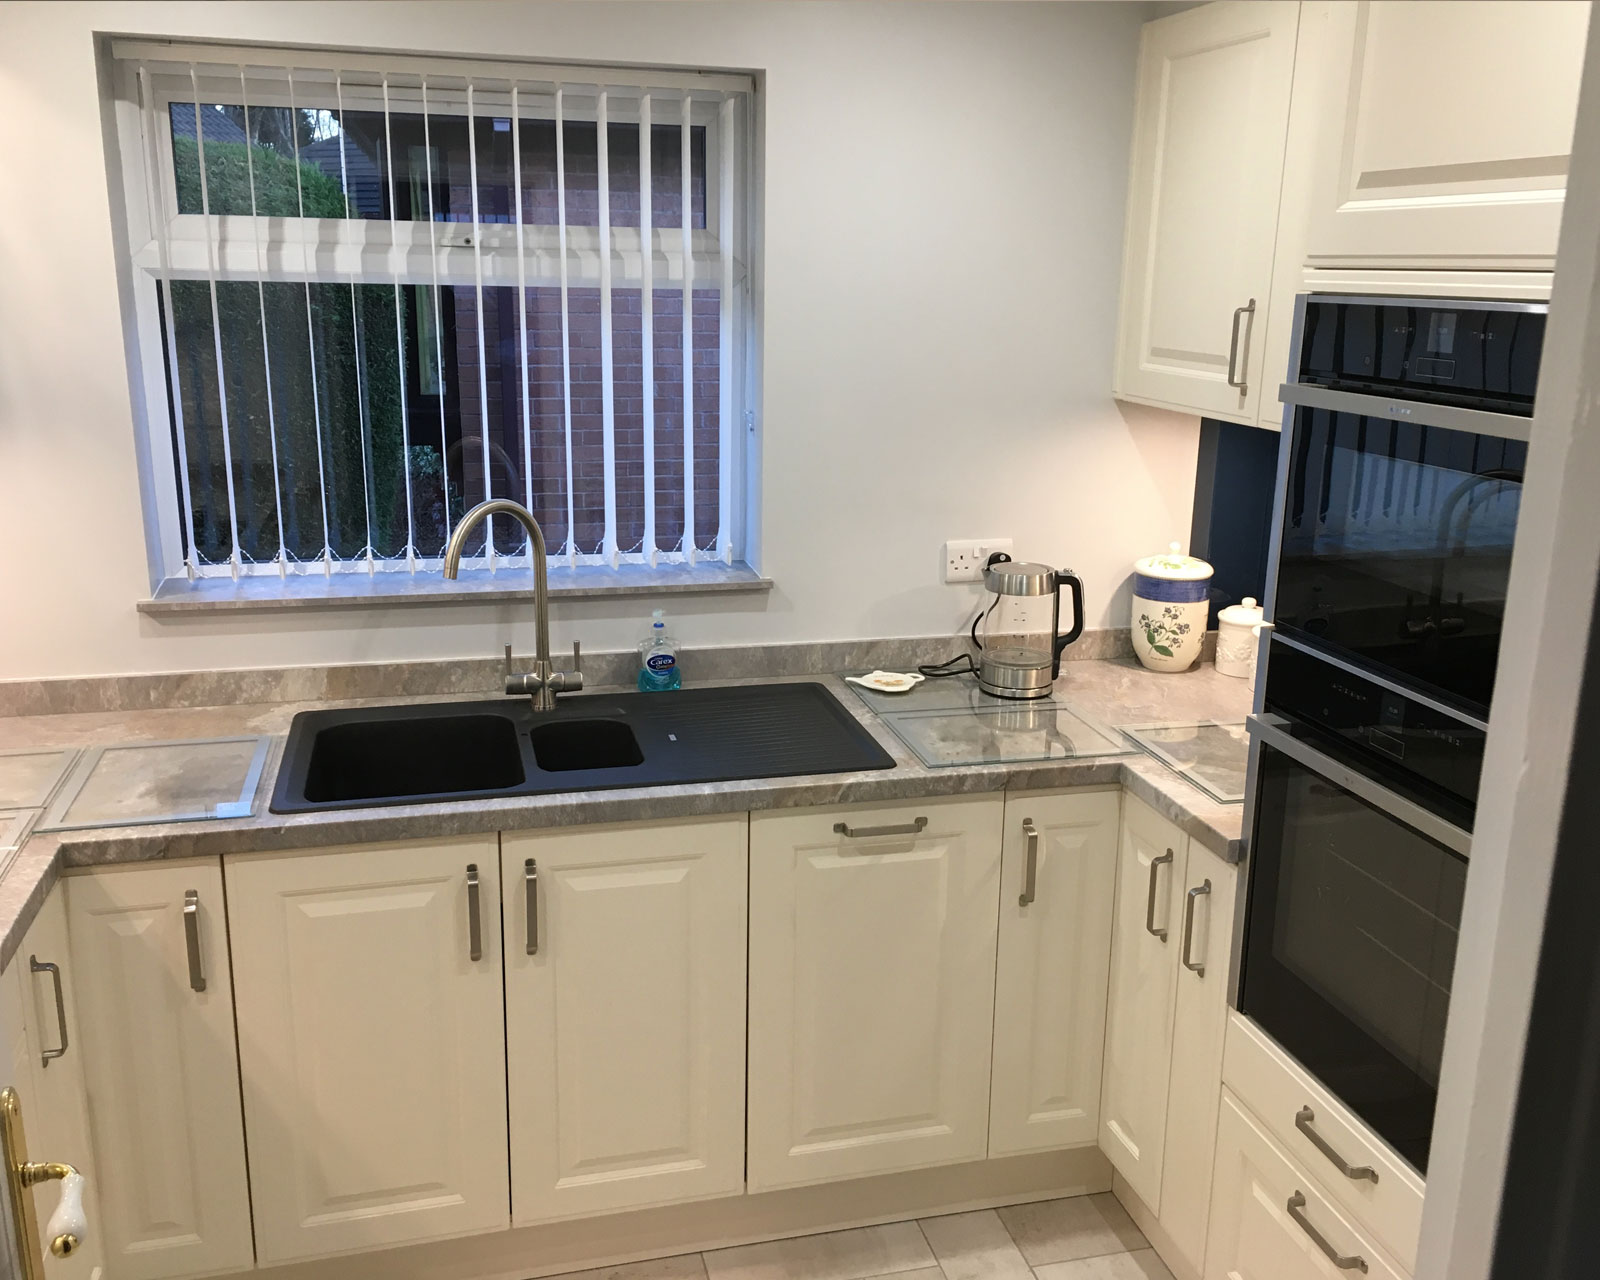 fitted kitchen Colton Leeds 2